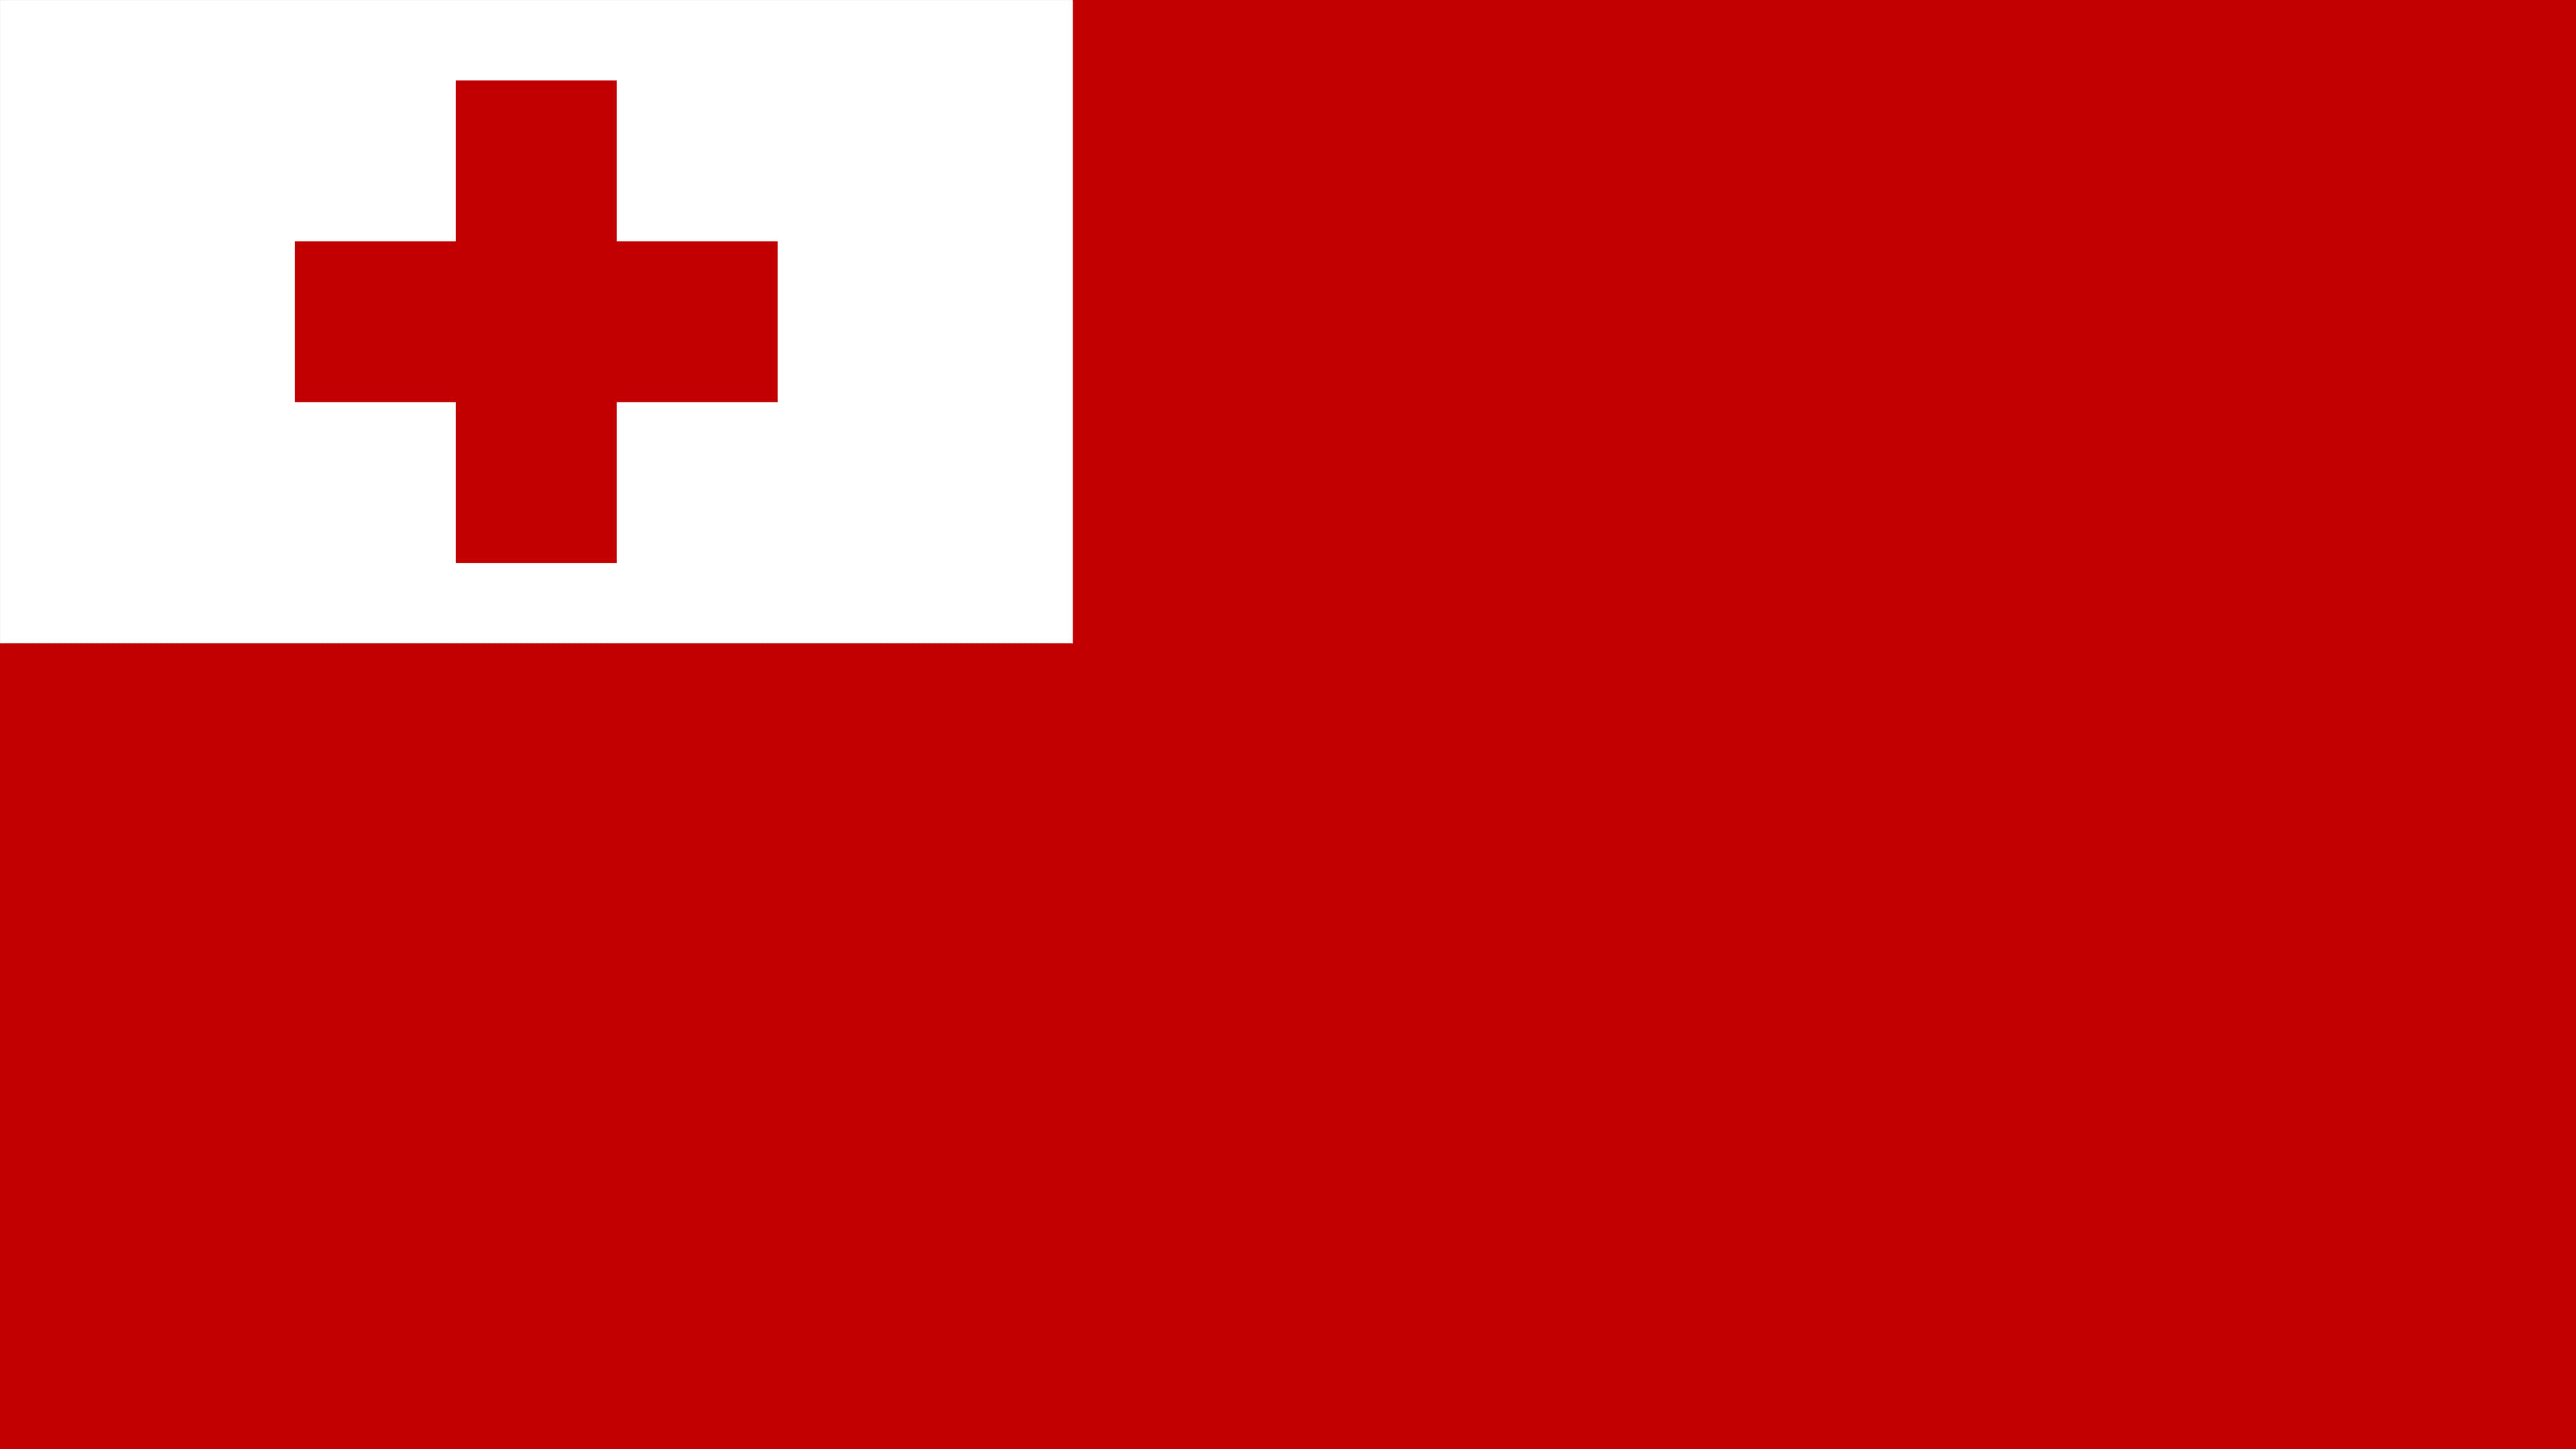 Tonga Flag UHD 4K Wallpaper Pixelz 3840x2160